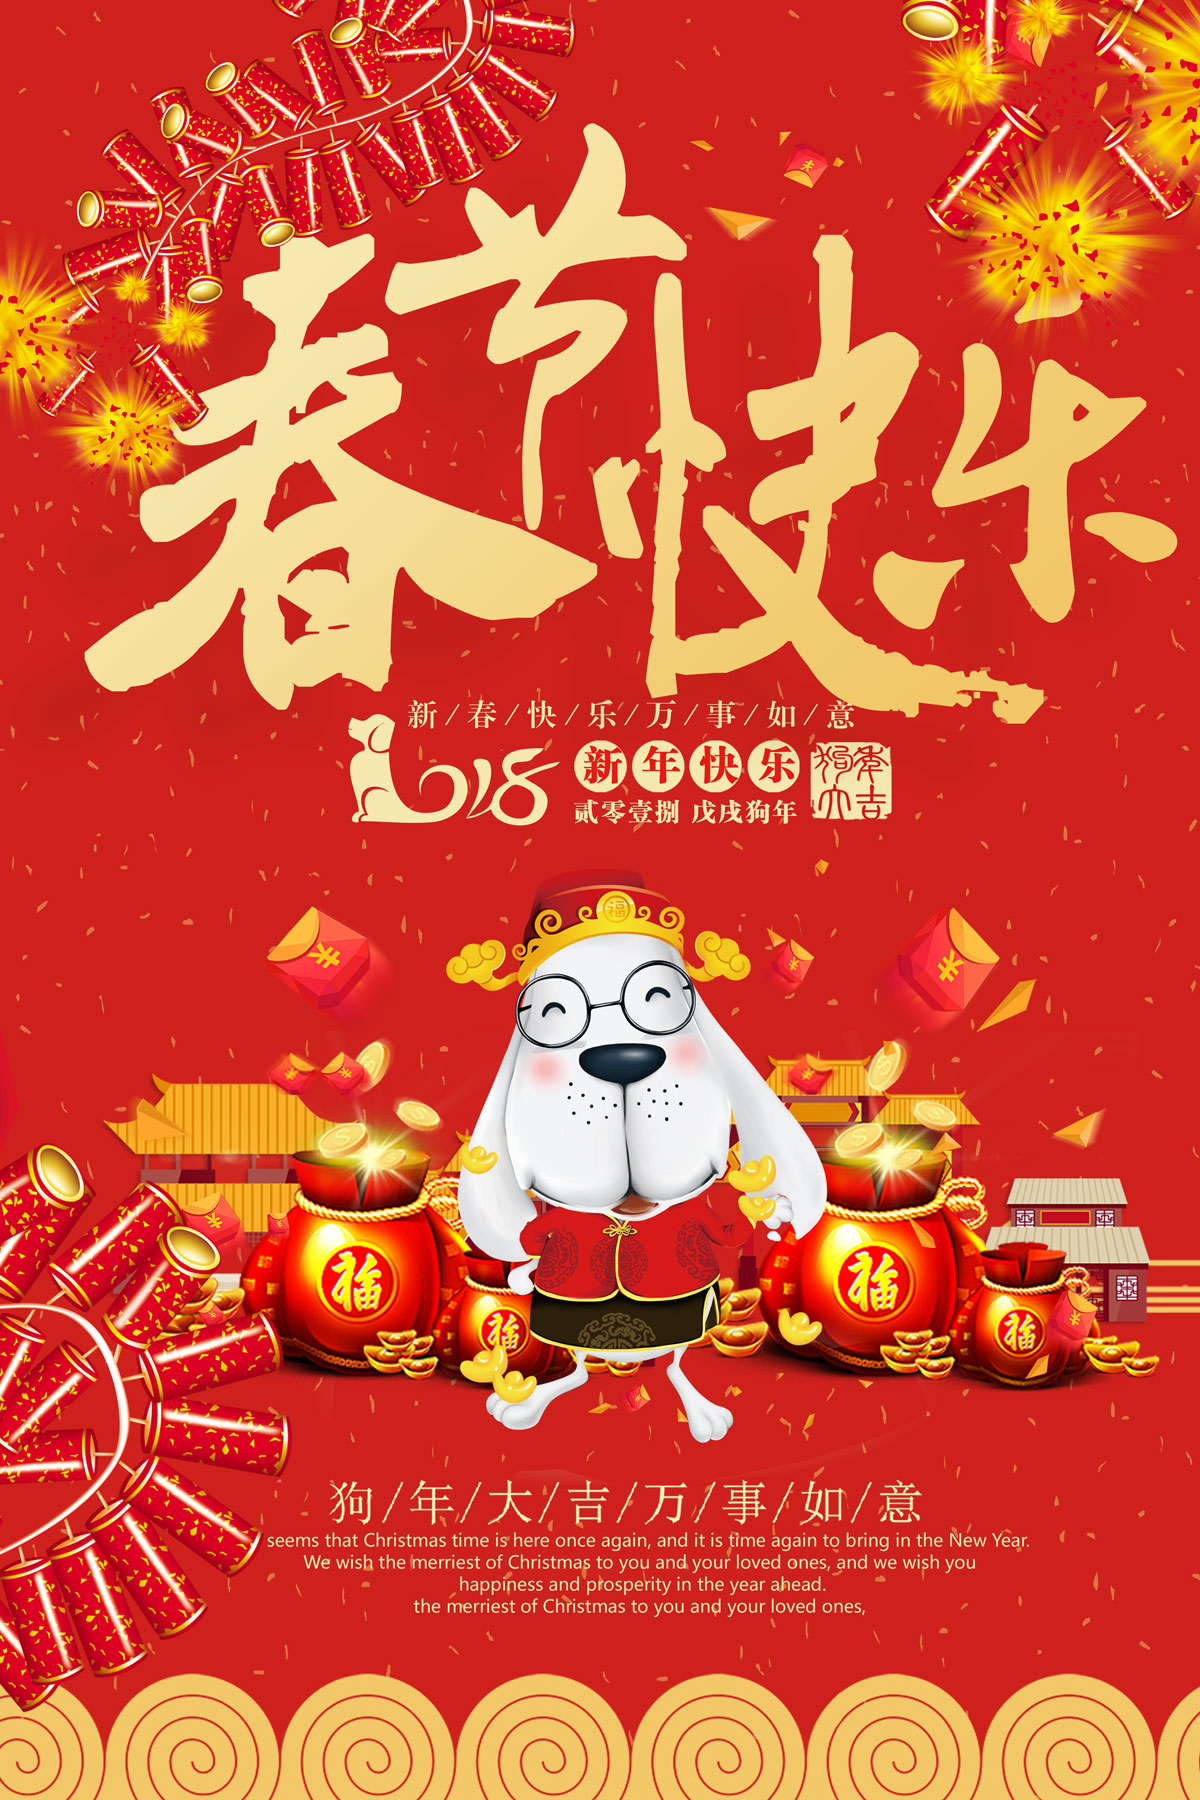 2018 Happy Chinese Spring Festival poster - PSD File Free Download